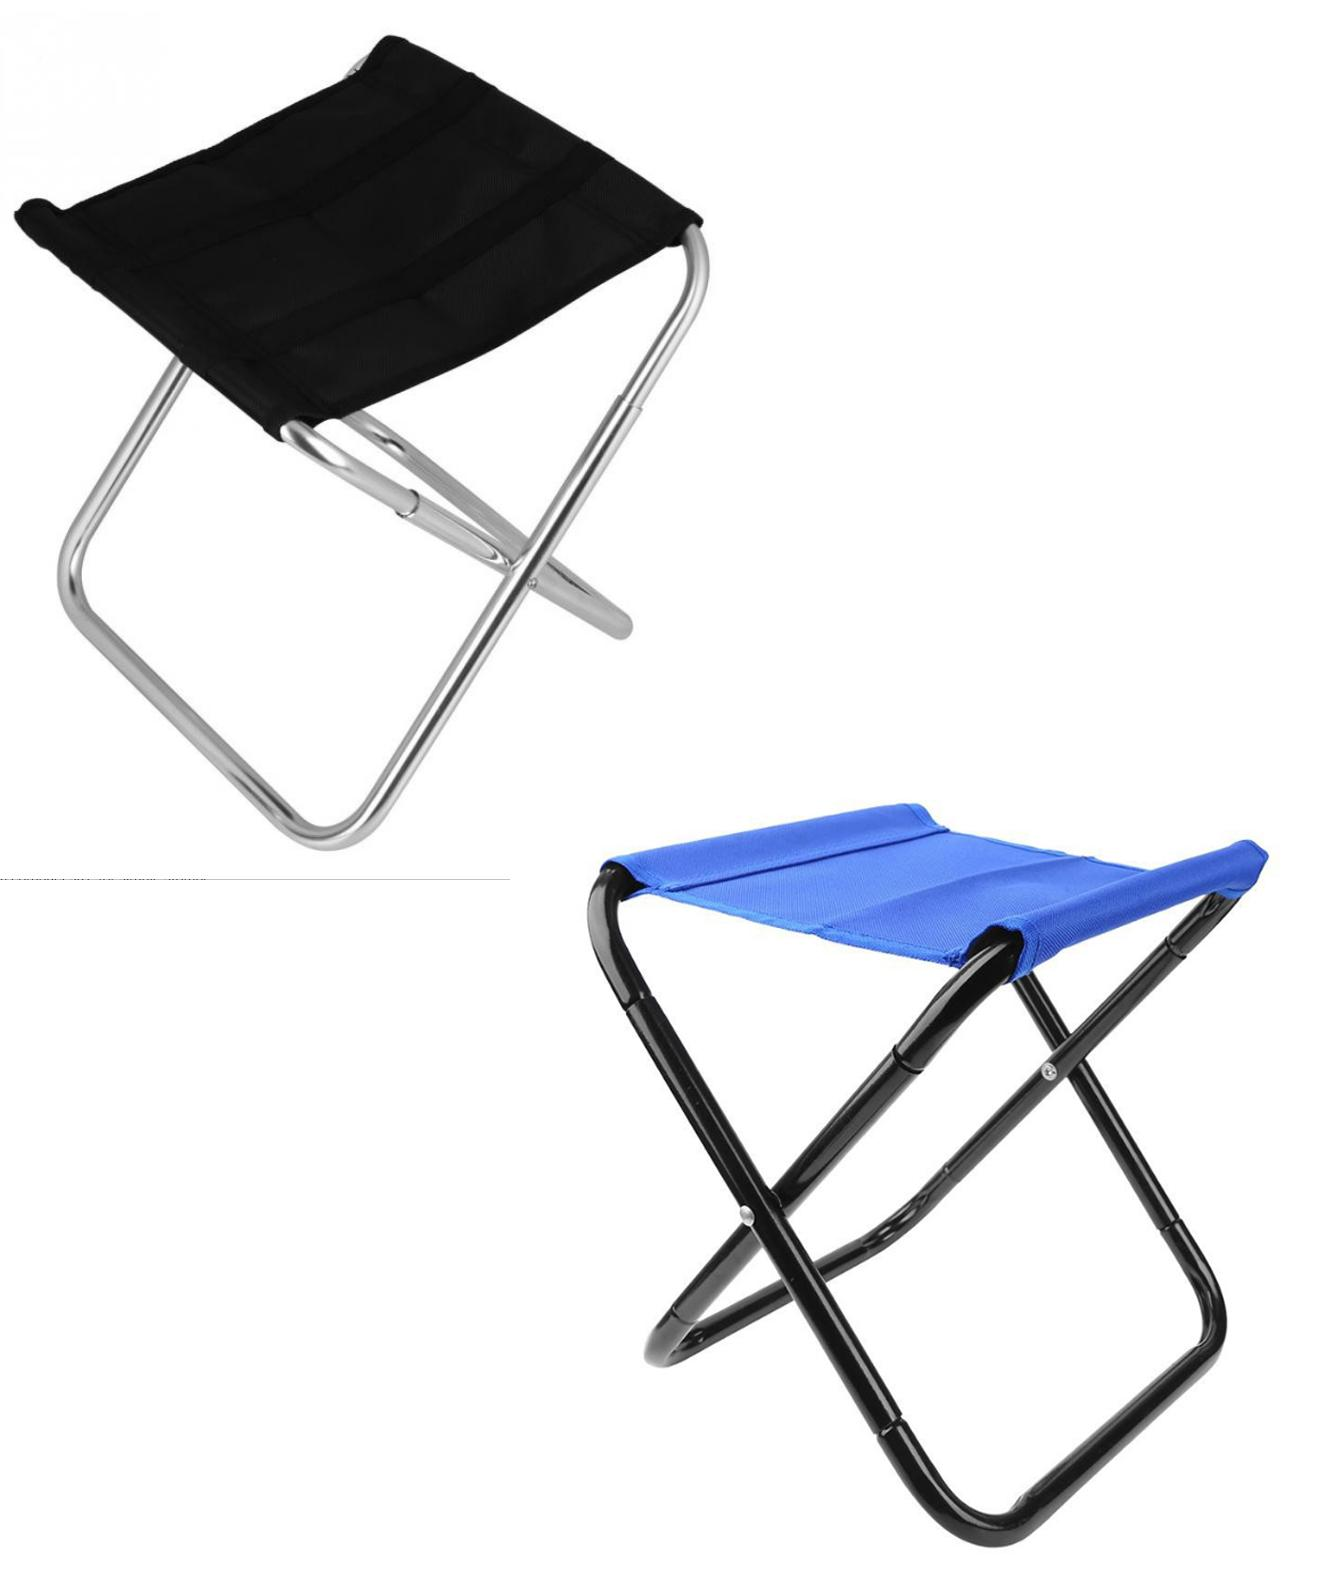 ... Picnic Outdoor Beach Garden Chair Side Tray For Drink - intl. ₱179.00. ₱391.00 -54%. (1). China. Set of Two Portable Folding Stool for Camping and ...